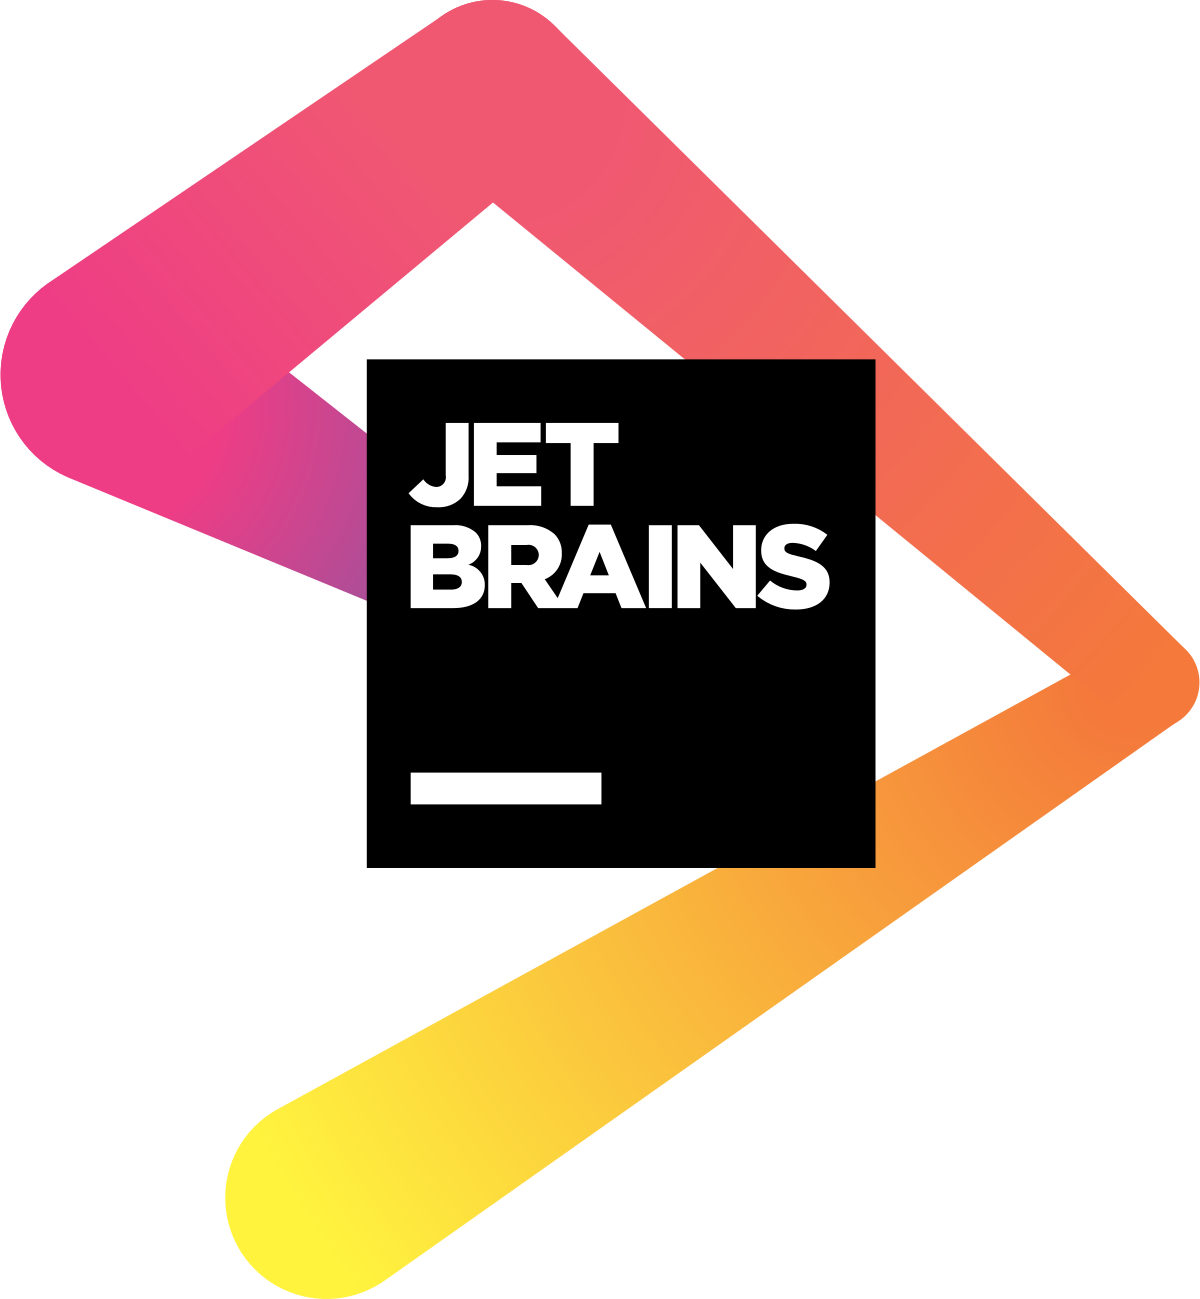 Jet brains logo